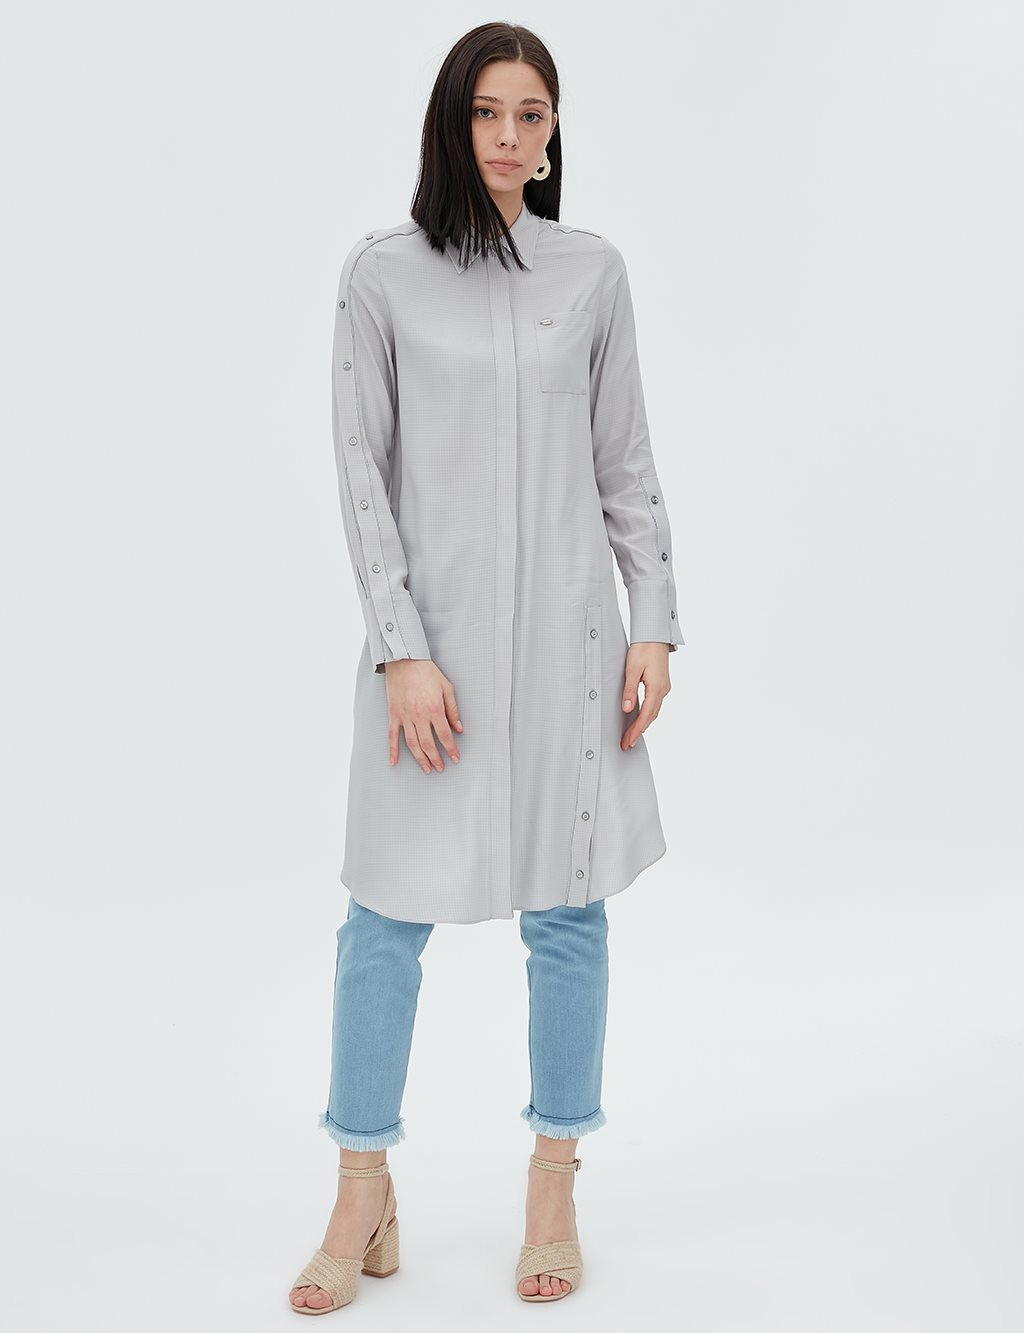 Pearl Detailed Tunic B20 21060 Grey